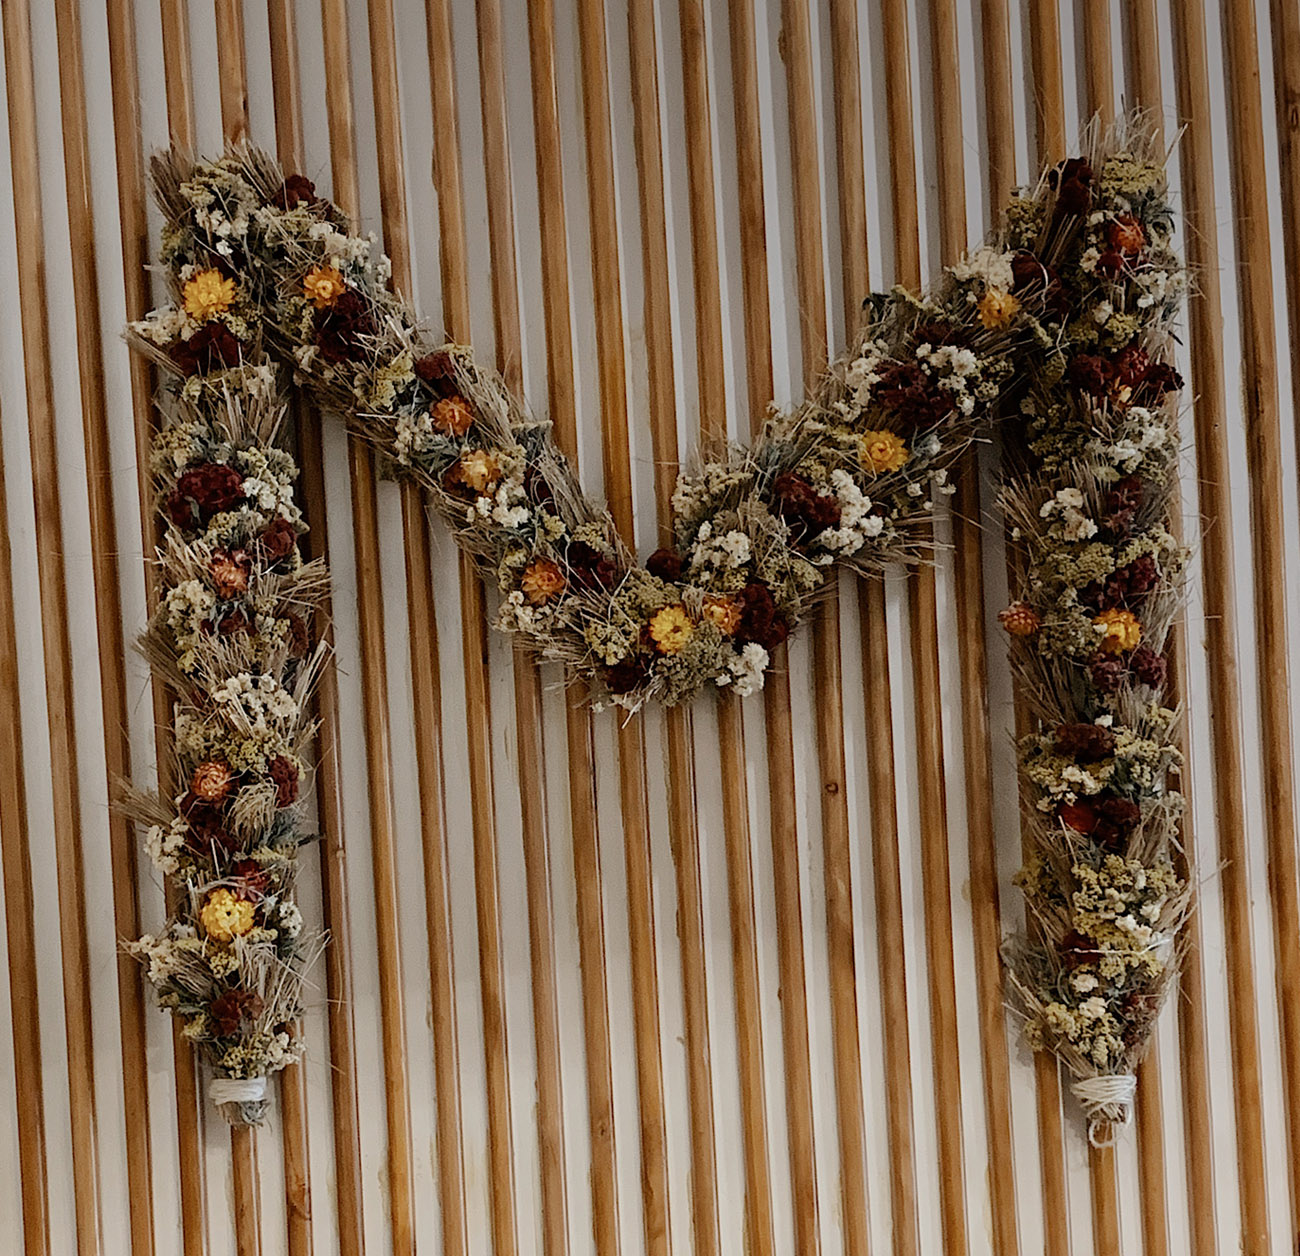 Dried Flowers on the Wall